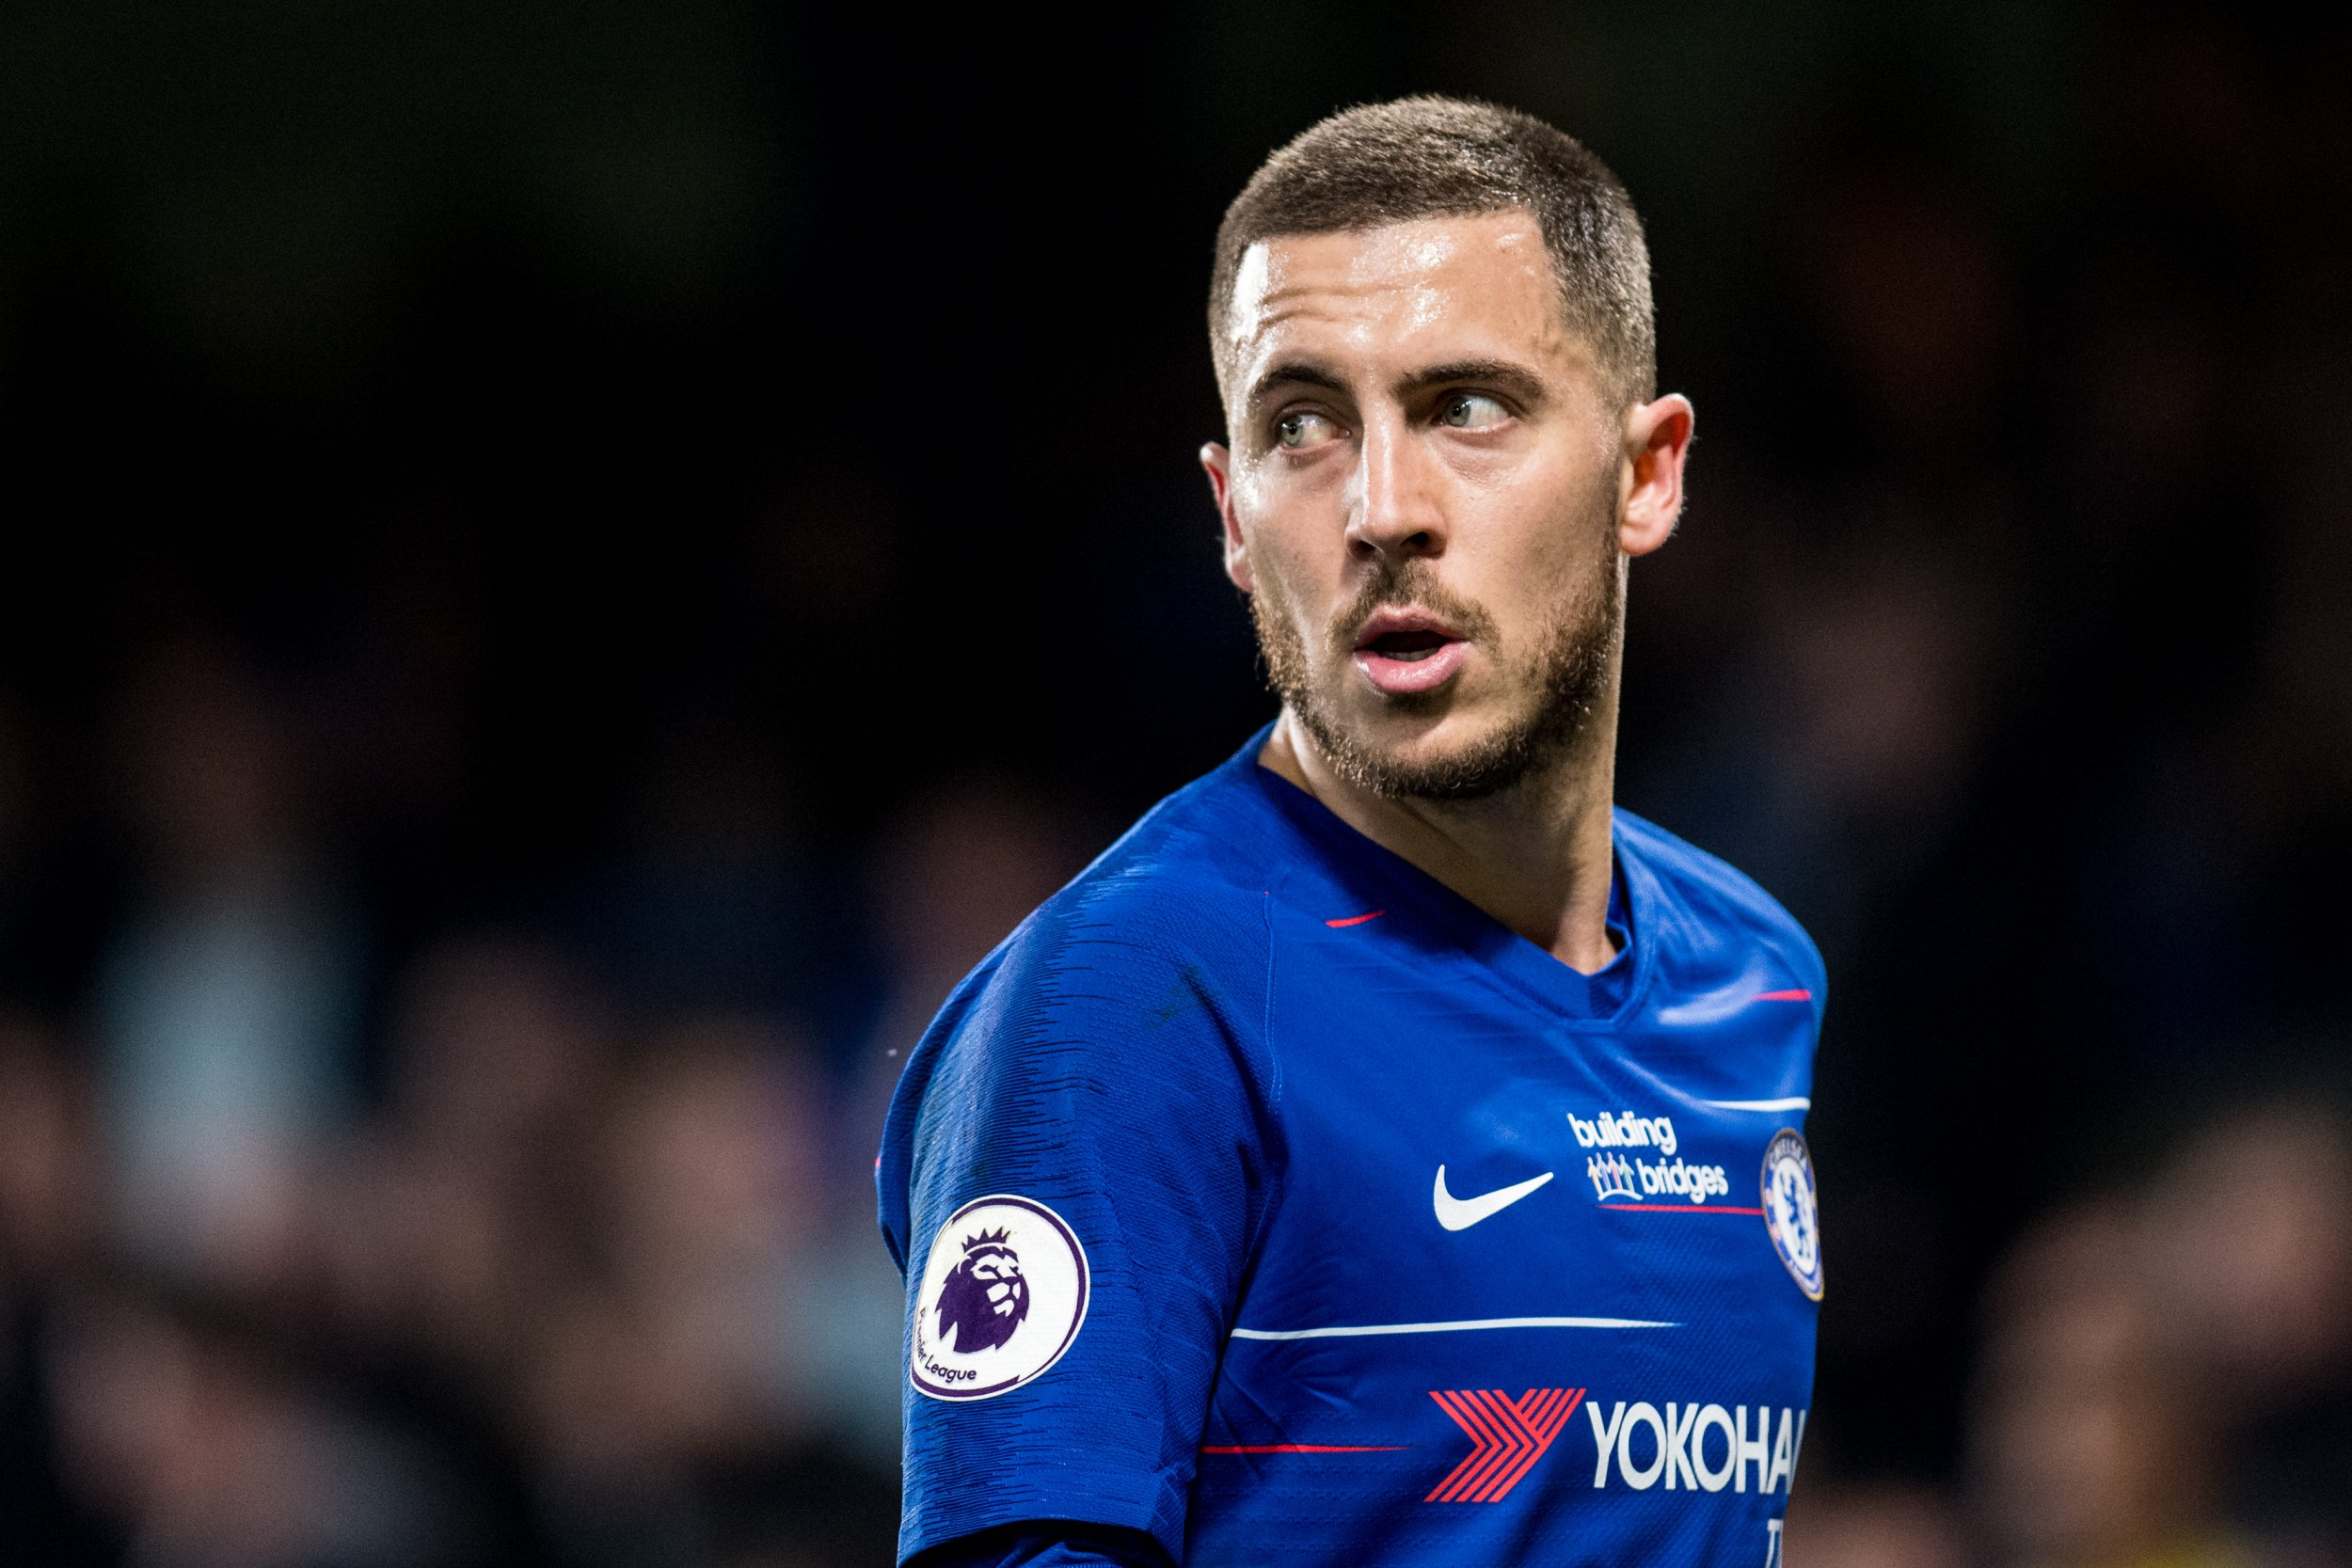 Graeme Souness tells Eden Hazard to leave Chelsea for Real Madrid